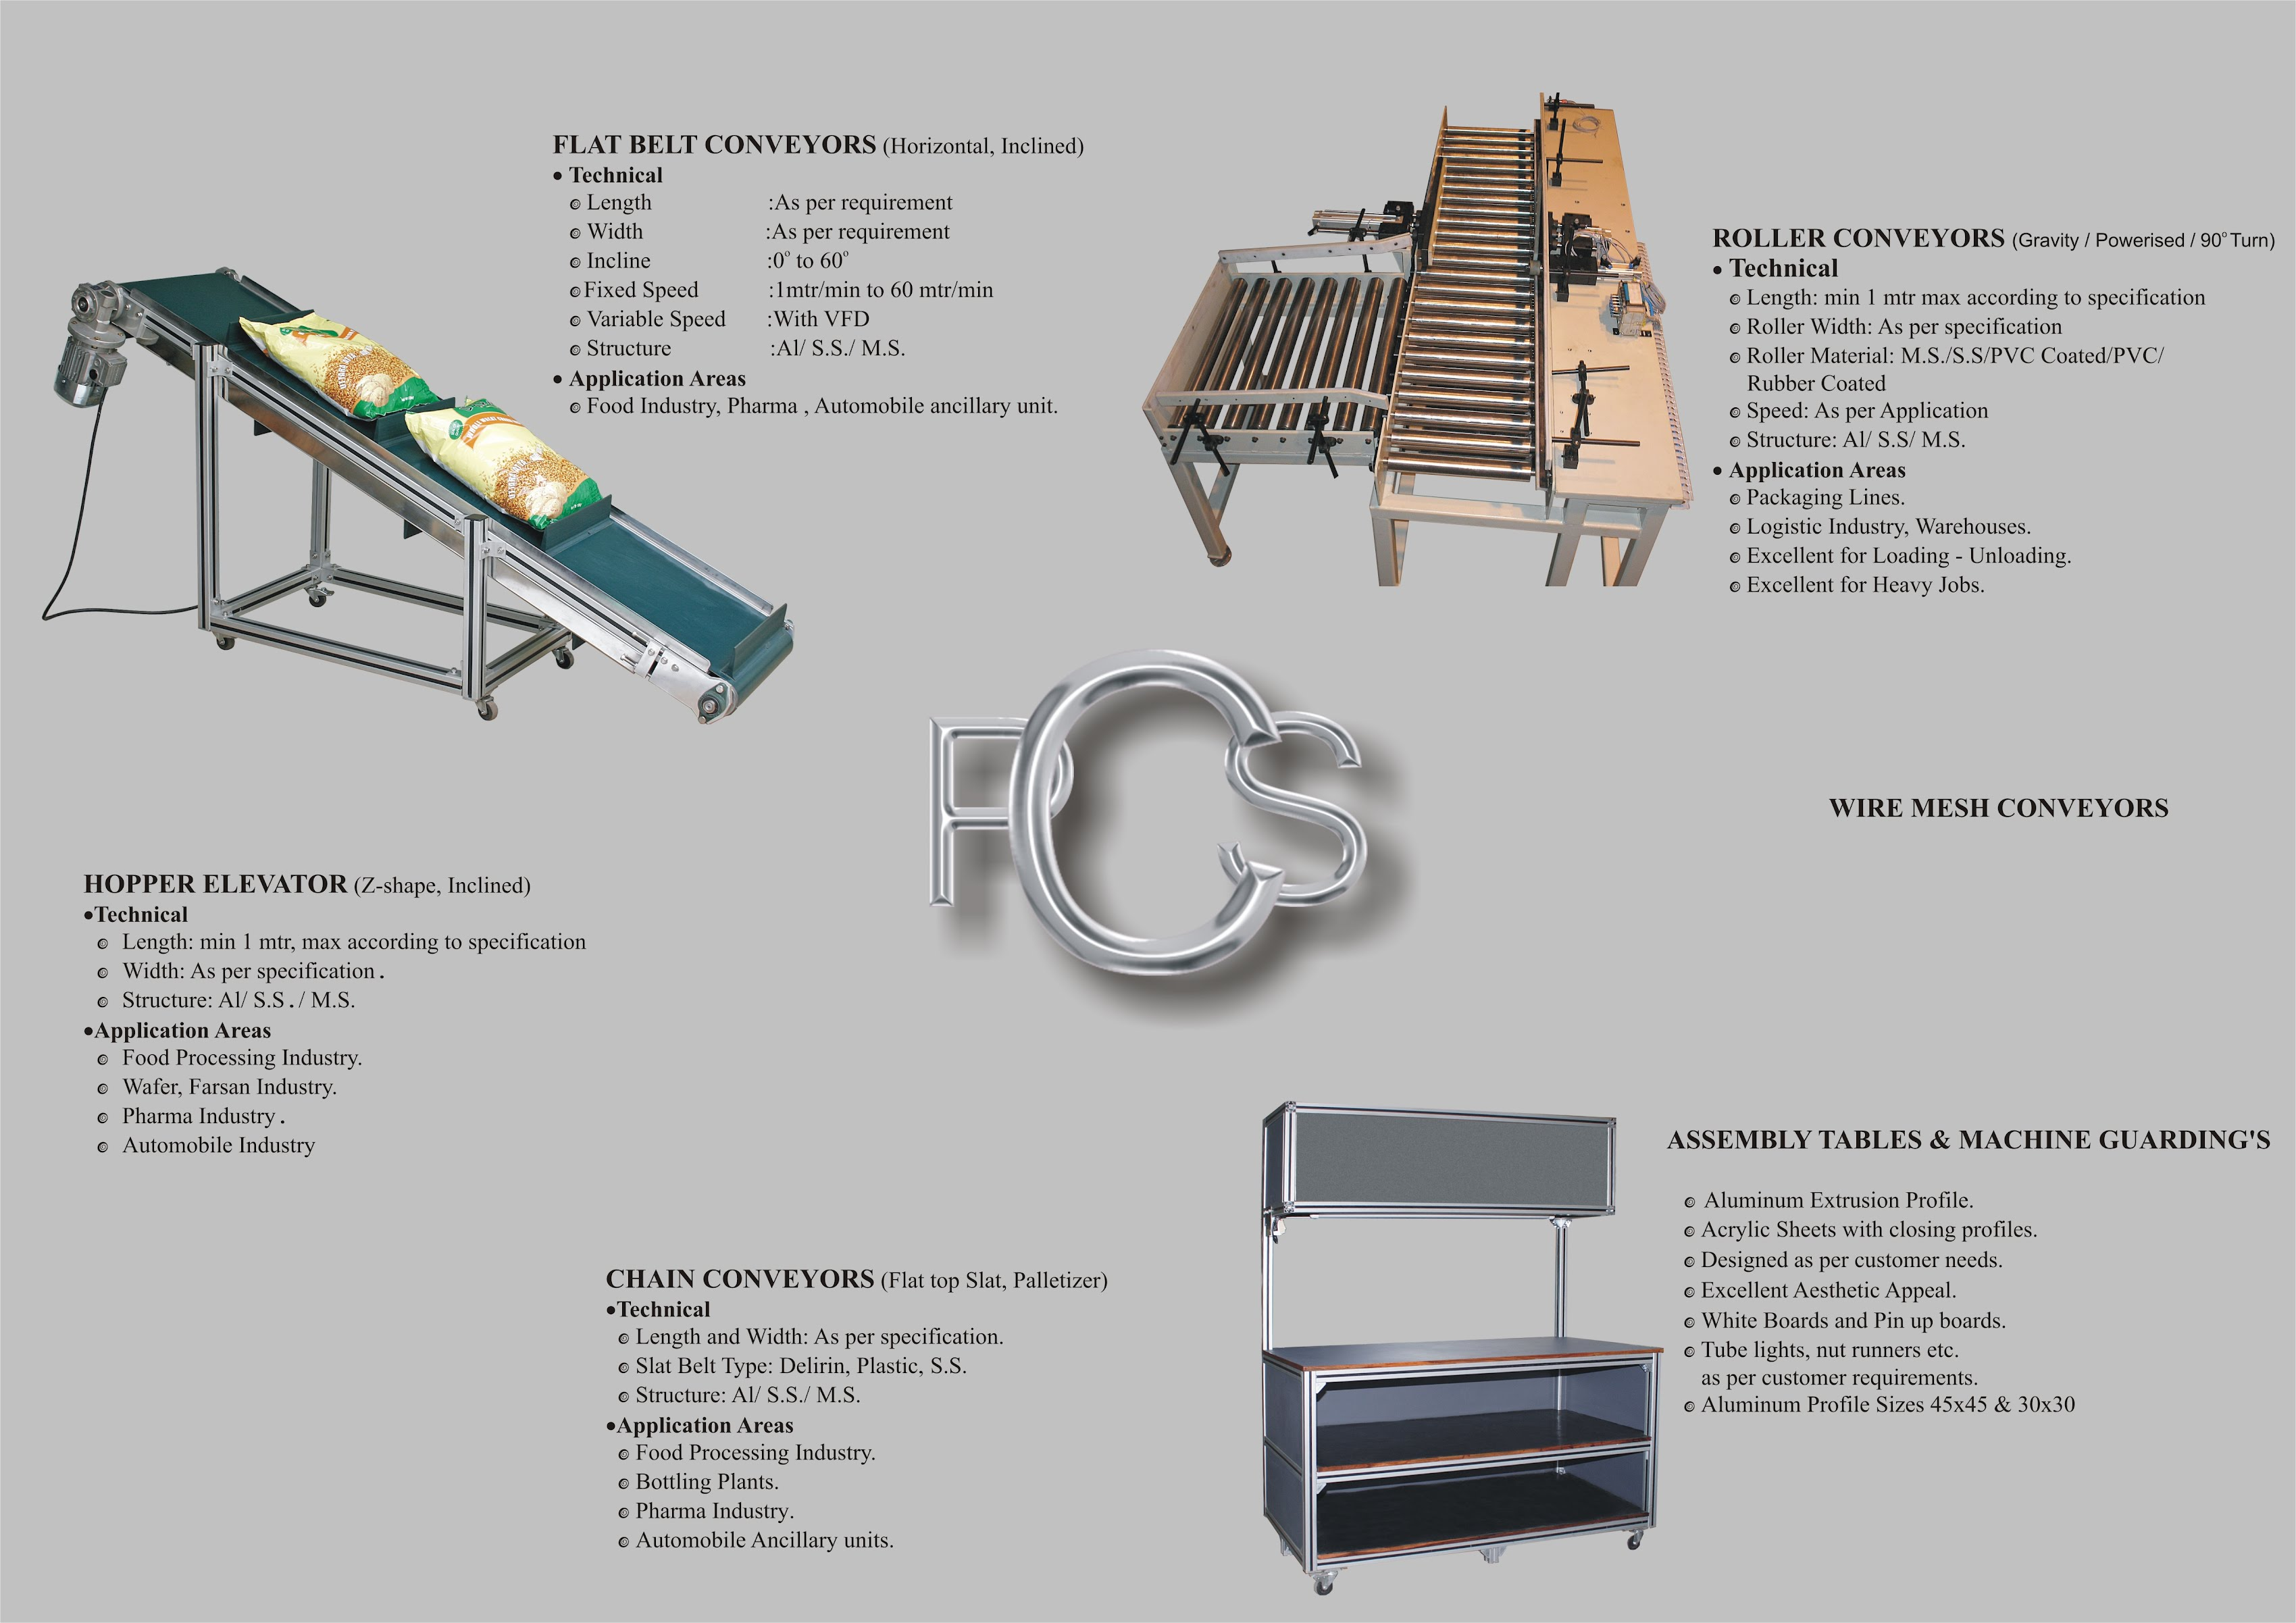 PARAB CONVEYOR SYSTEMS - SMC exports and imports